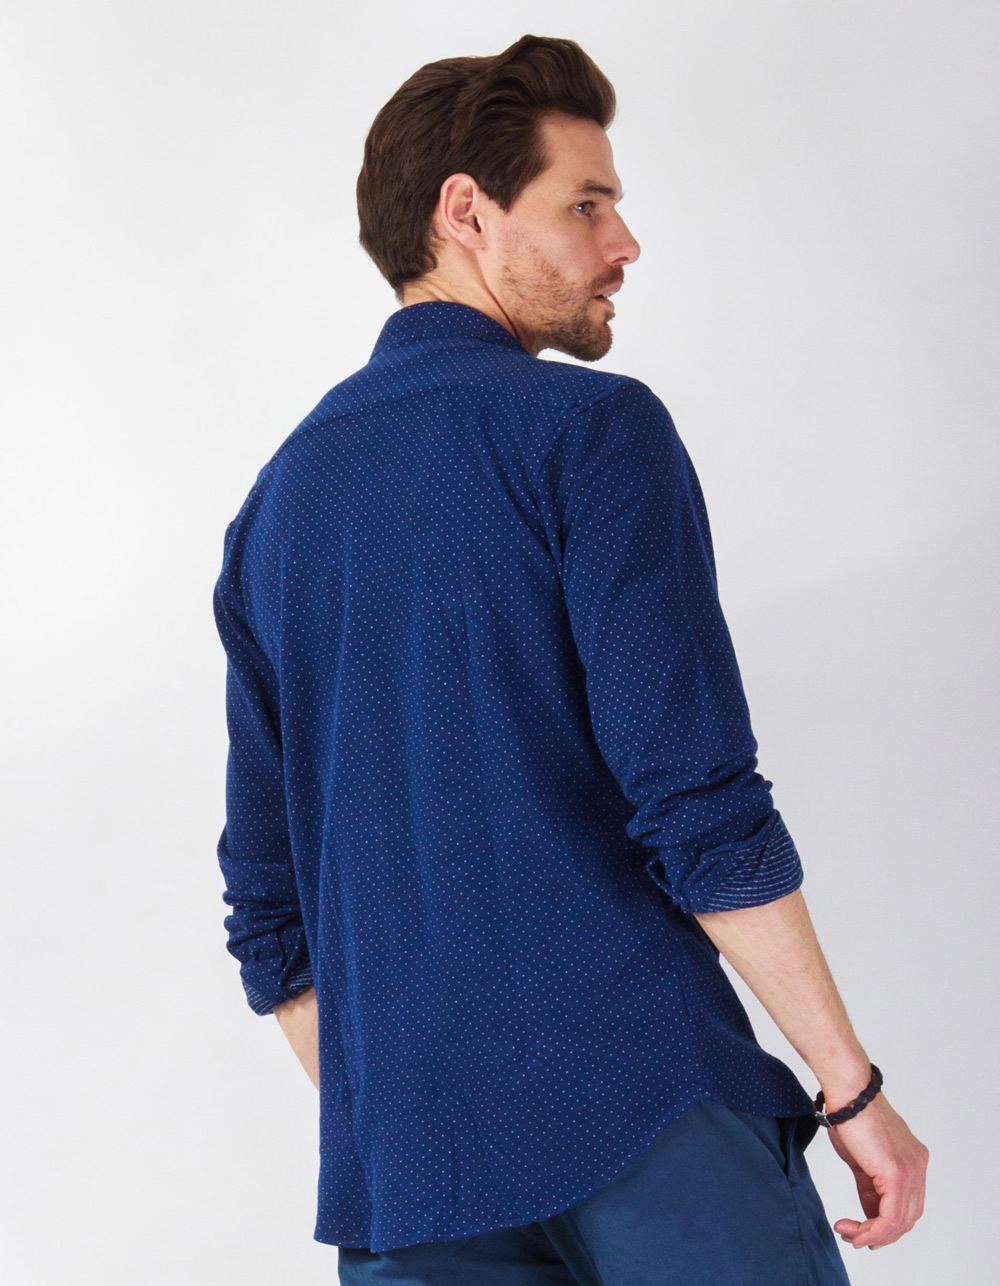 Blue micro-spotted shirt - Backside